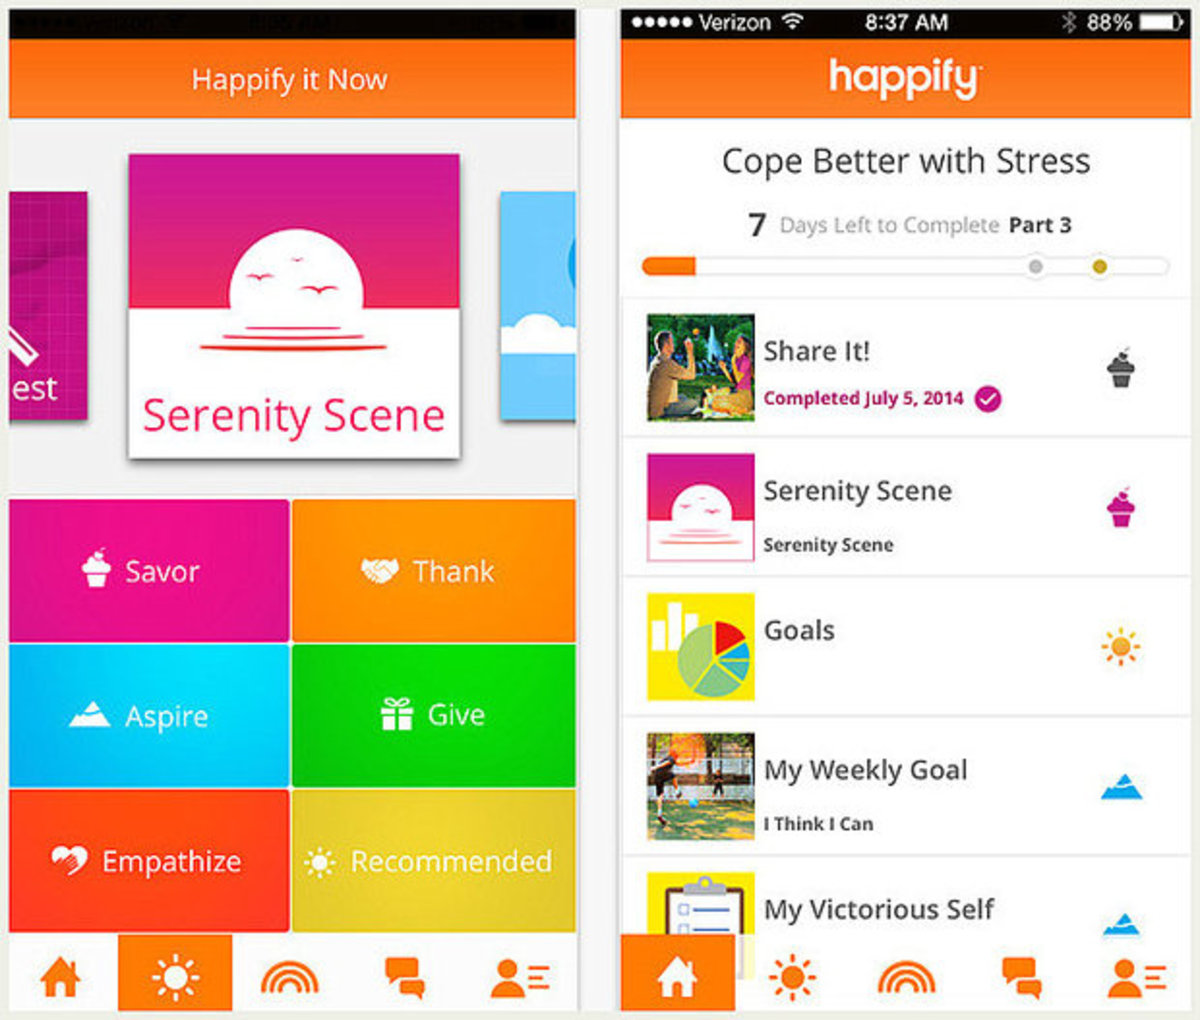 Happify App and Website